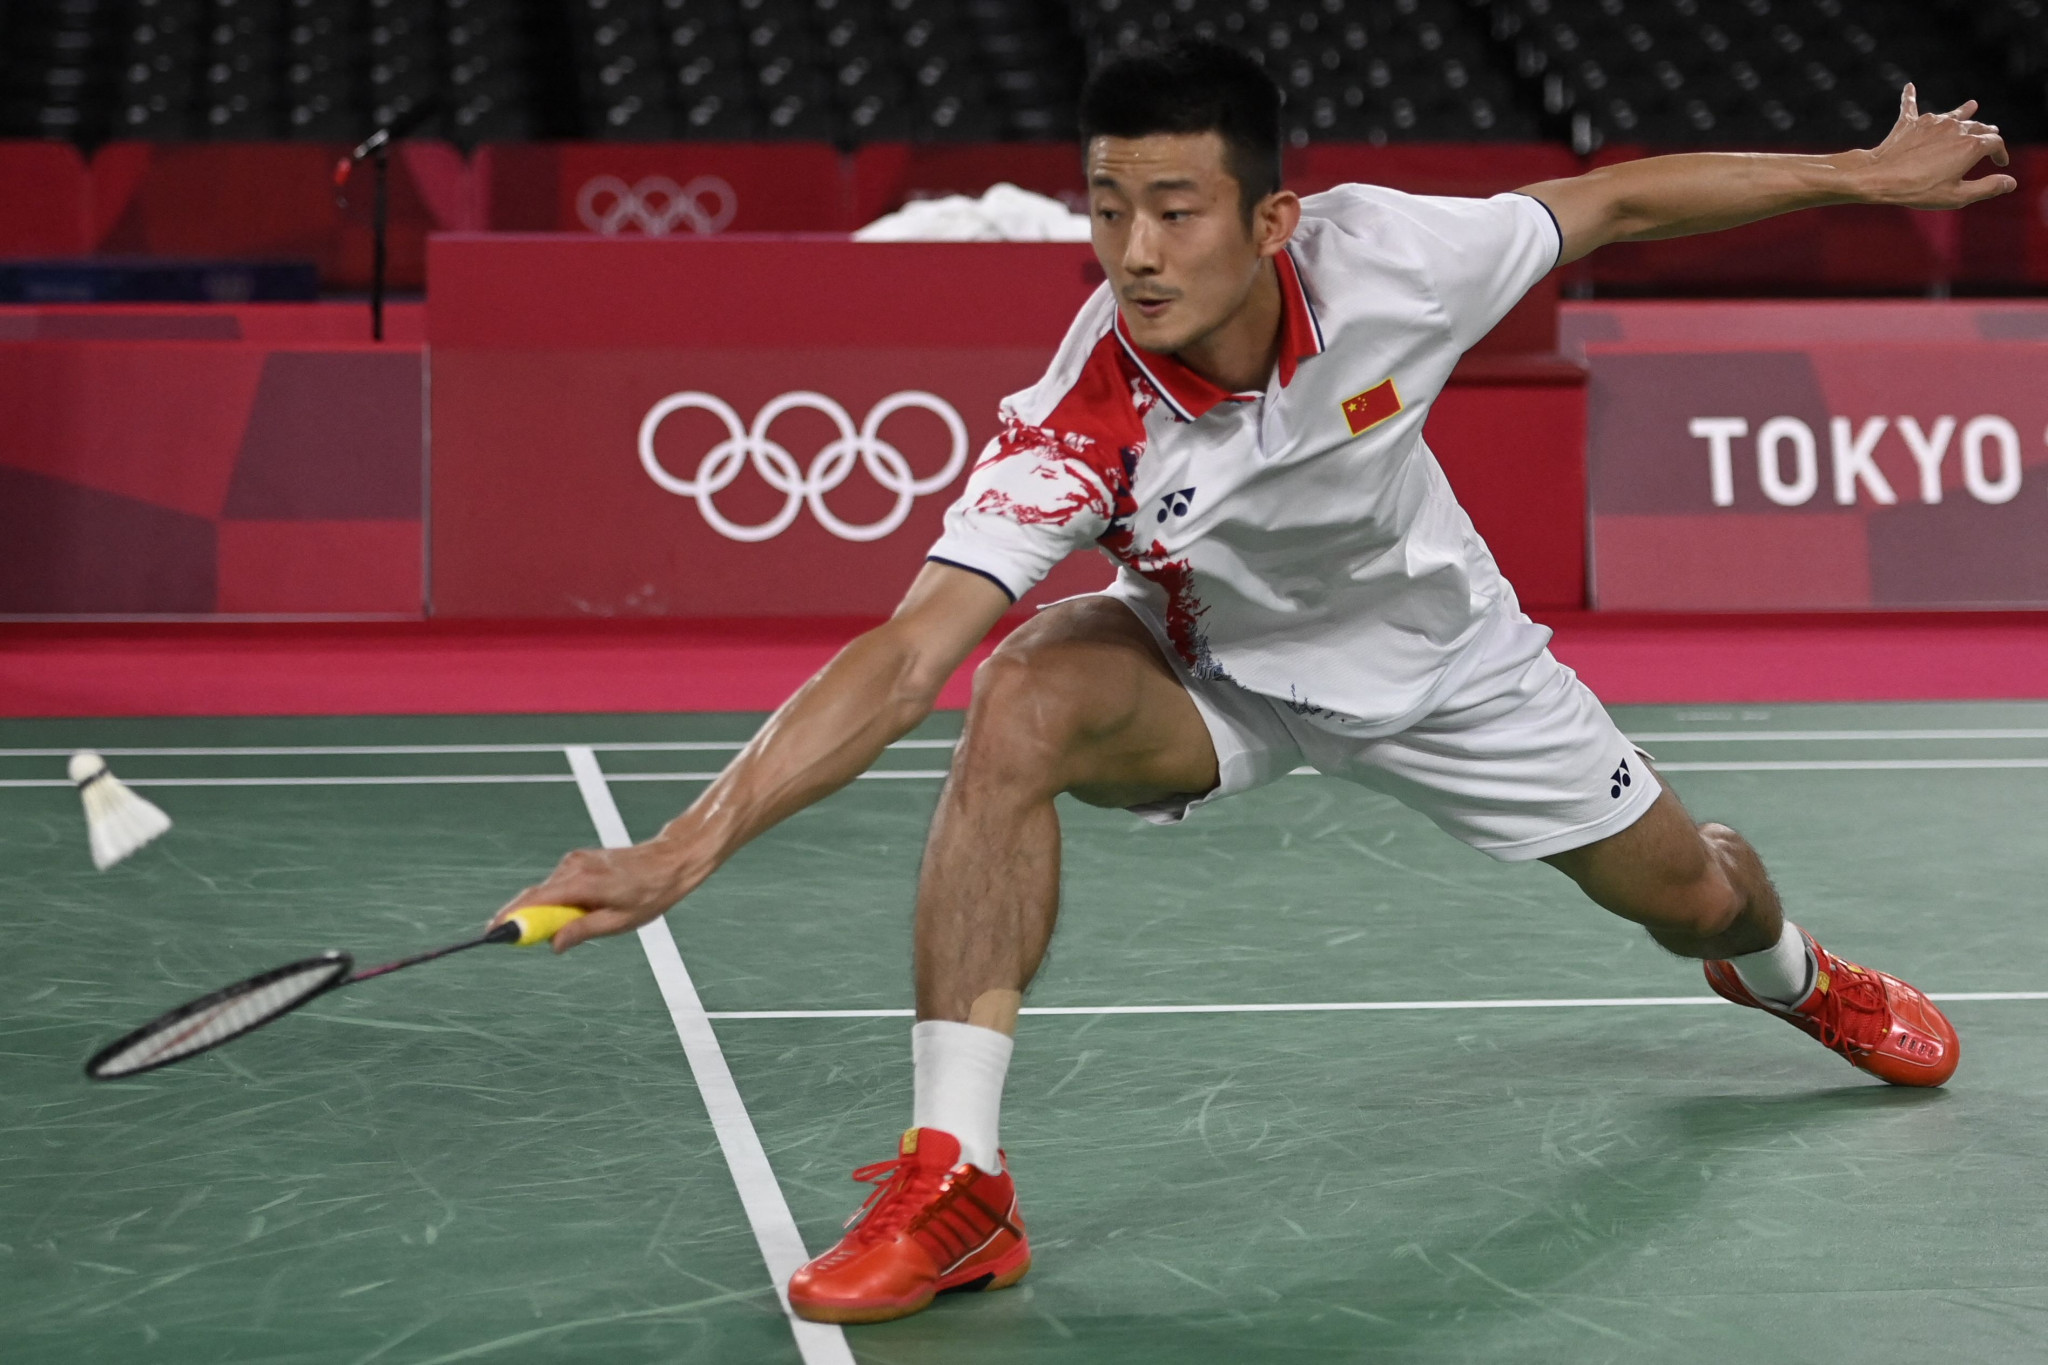 14-time winners China prove superiority with 5-0 wins in Uber and Thomas Cup